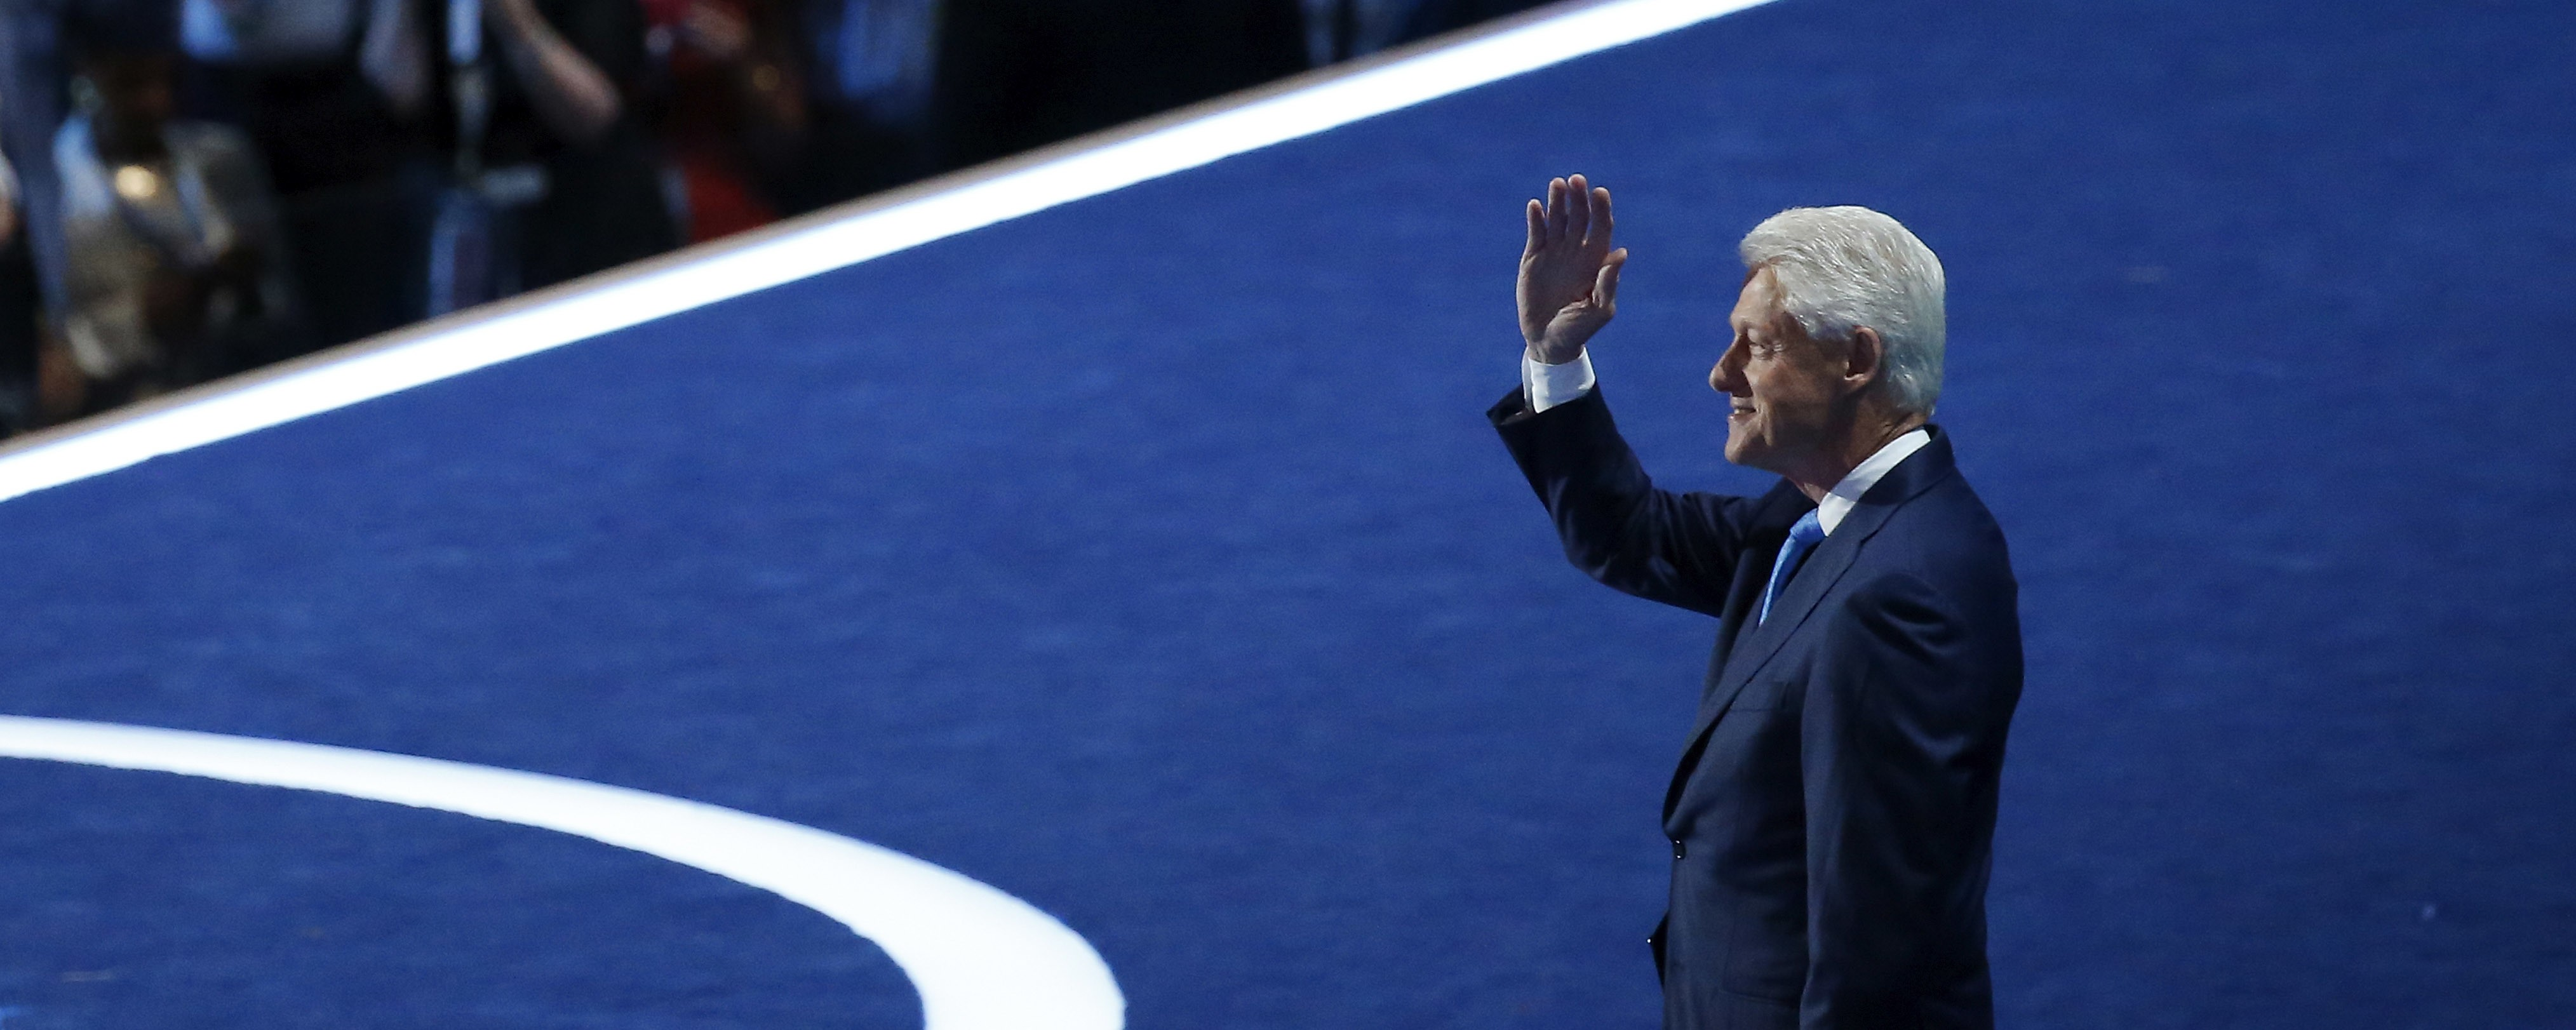 The best moments from Bill Clinton's speech at the Democratic convention